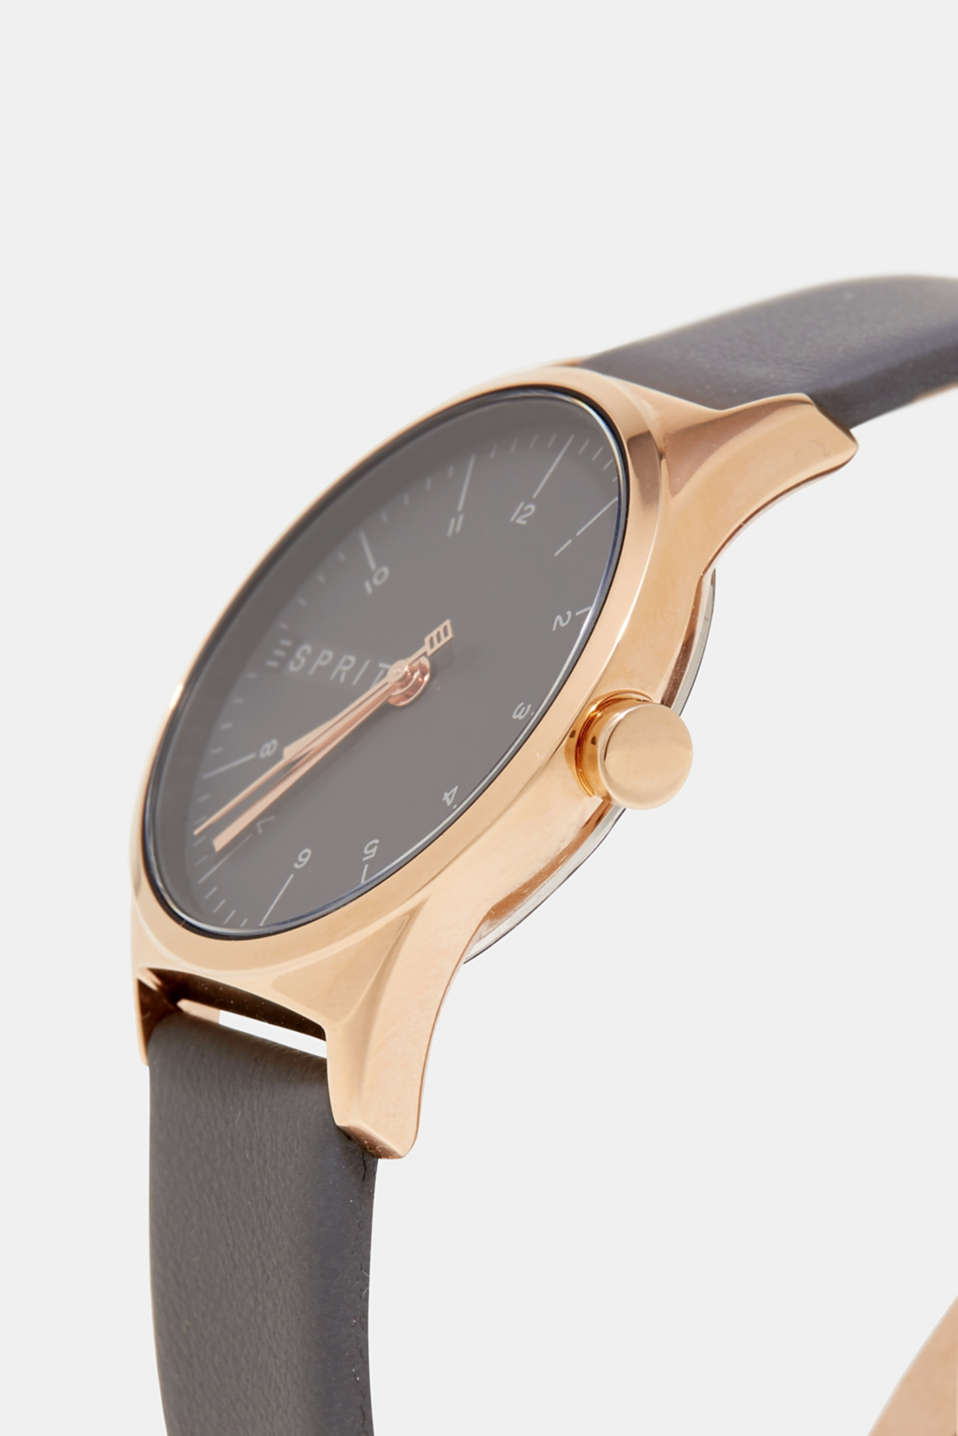 Rose gold tone watch, grey leather strap